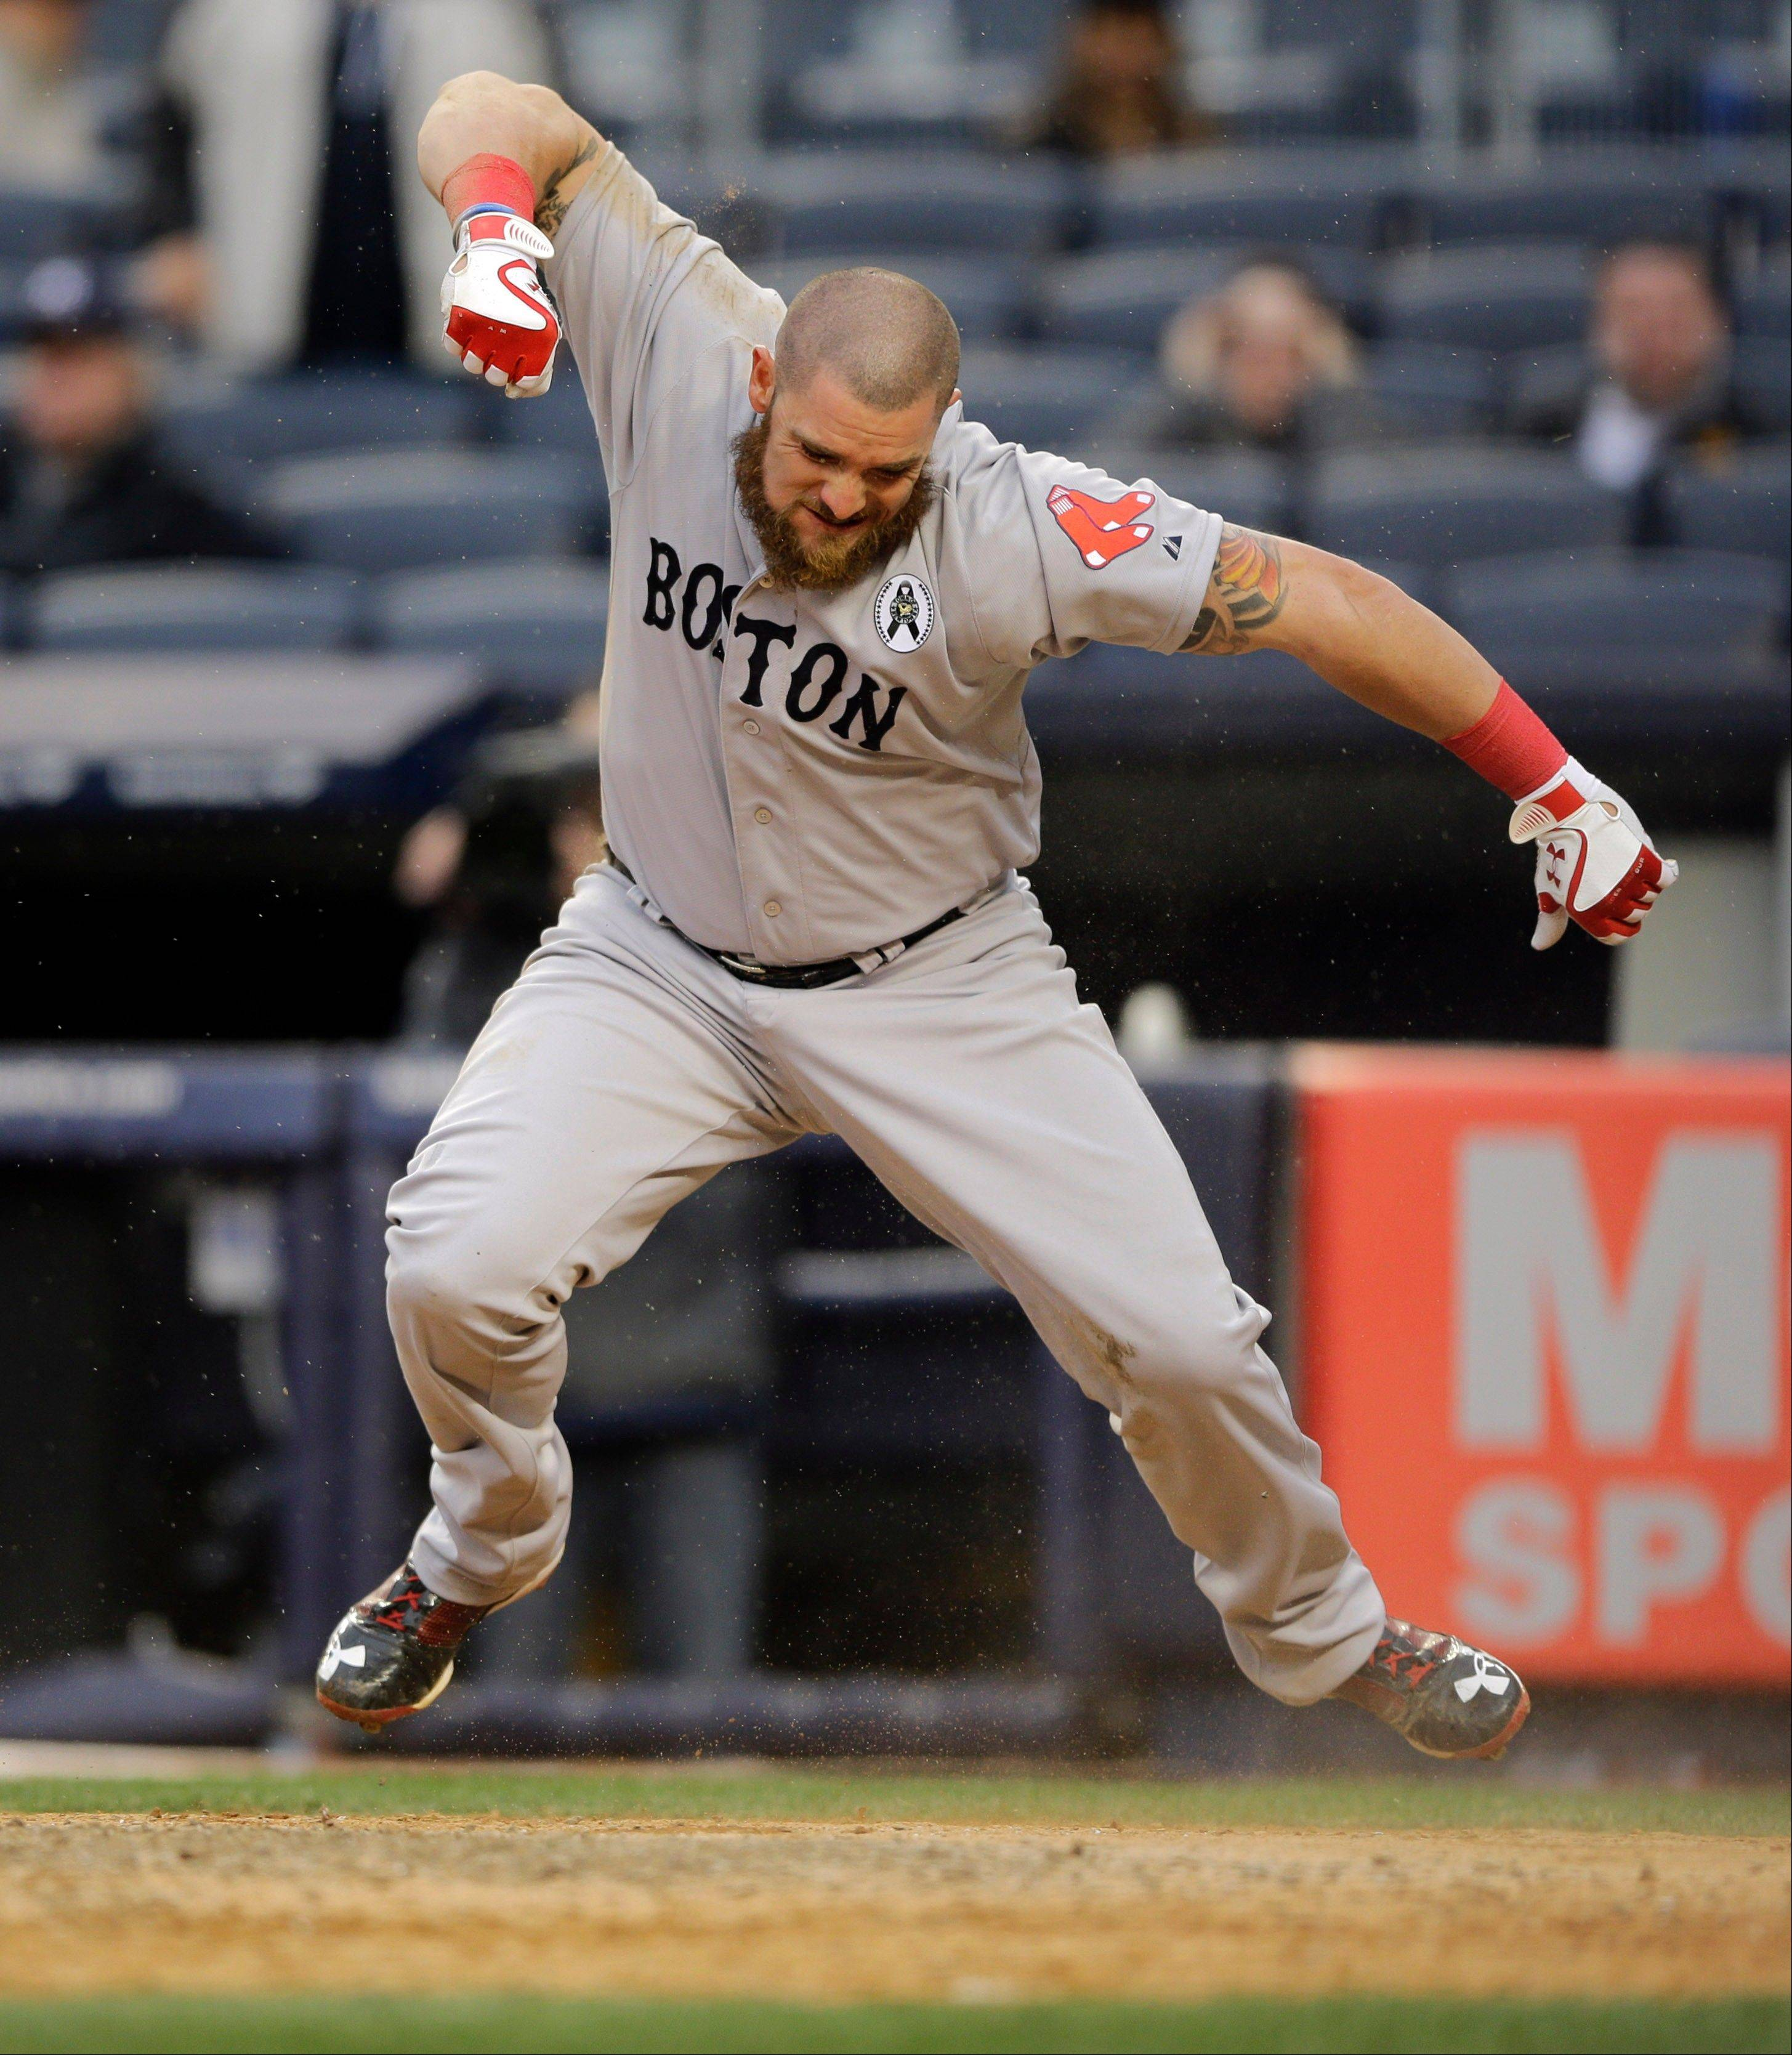 Boston's Jonny Gomes celebrates after scoring on a two-run single by Jacoby Ellsbury during the ninth inning Monday in New York.